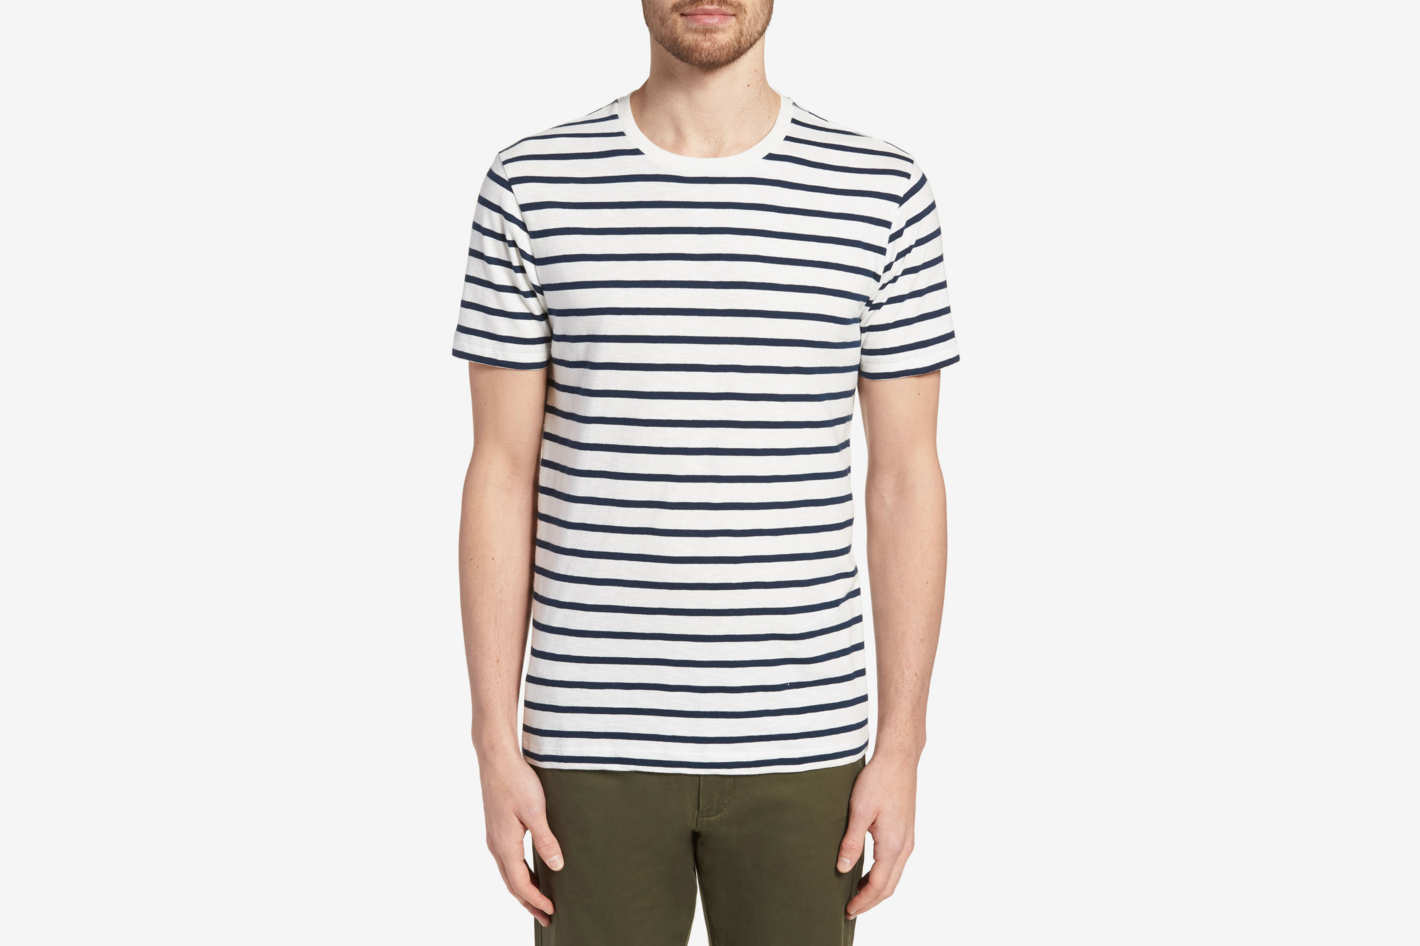 J.Crew Deck Stripe Slub Cotton T-shirt